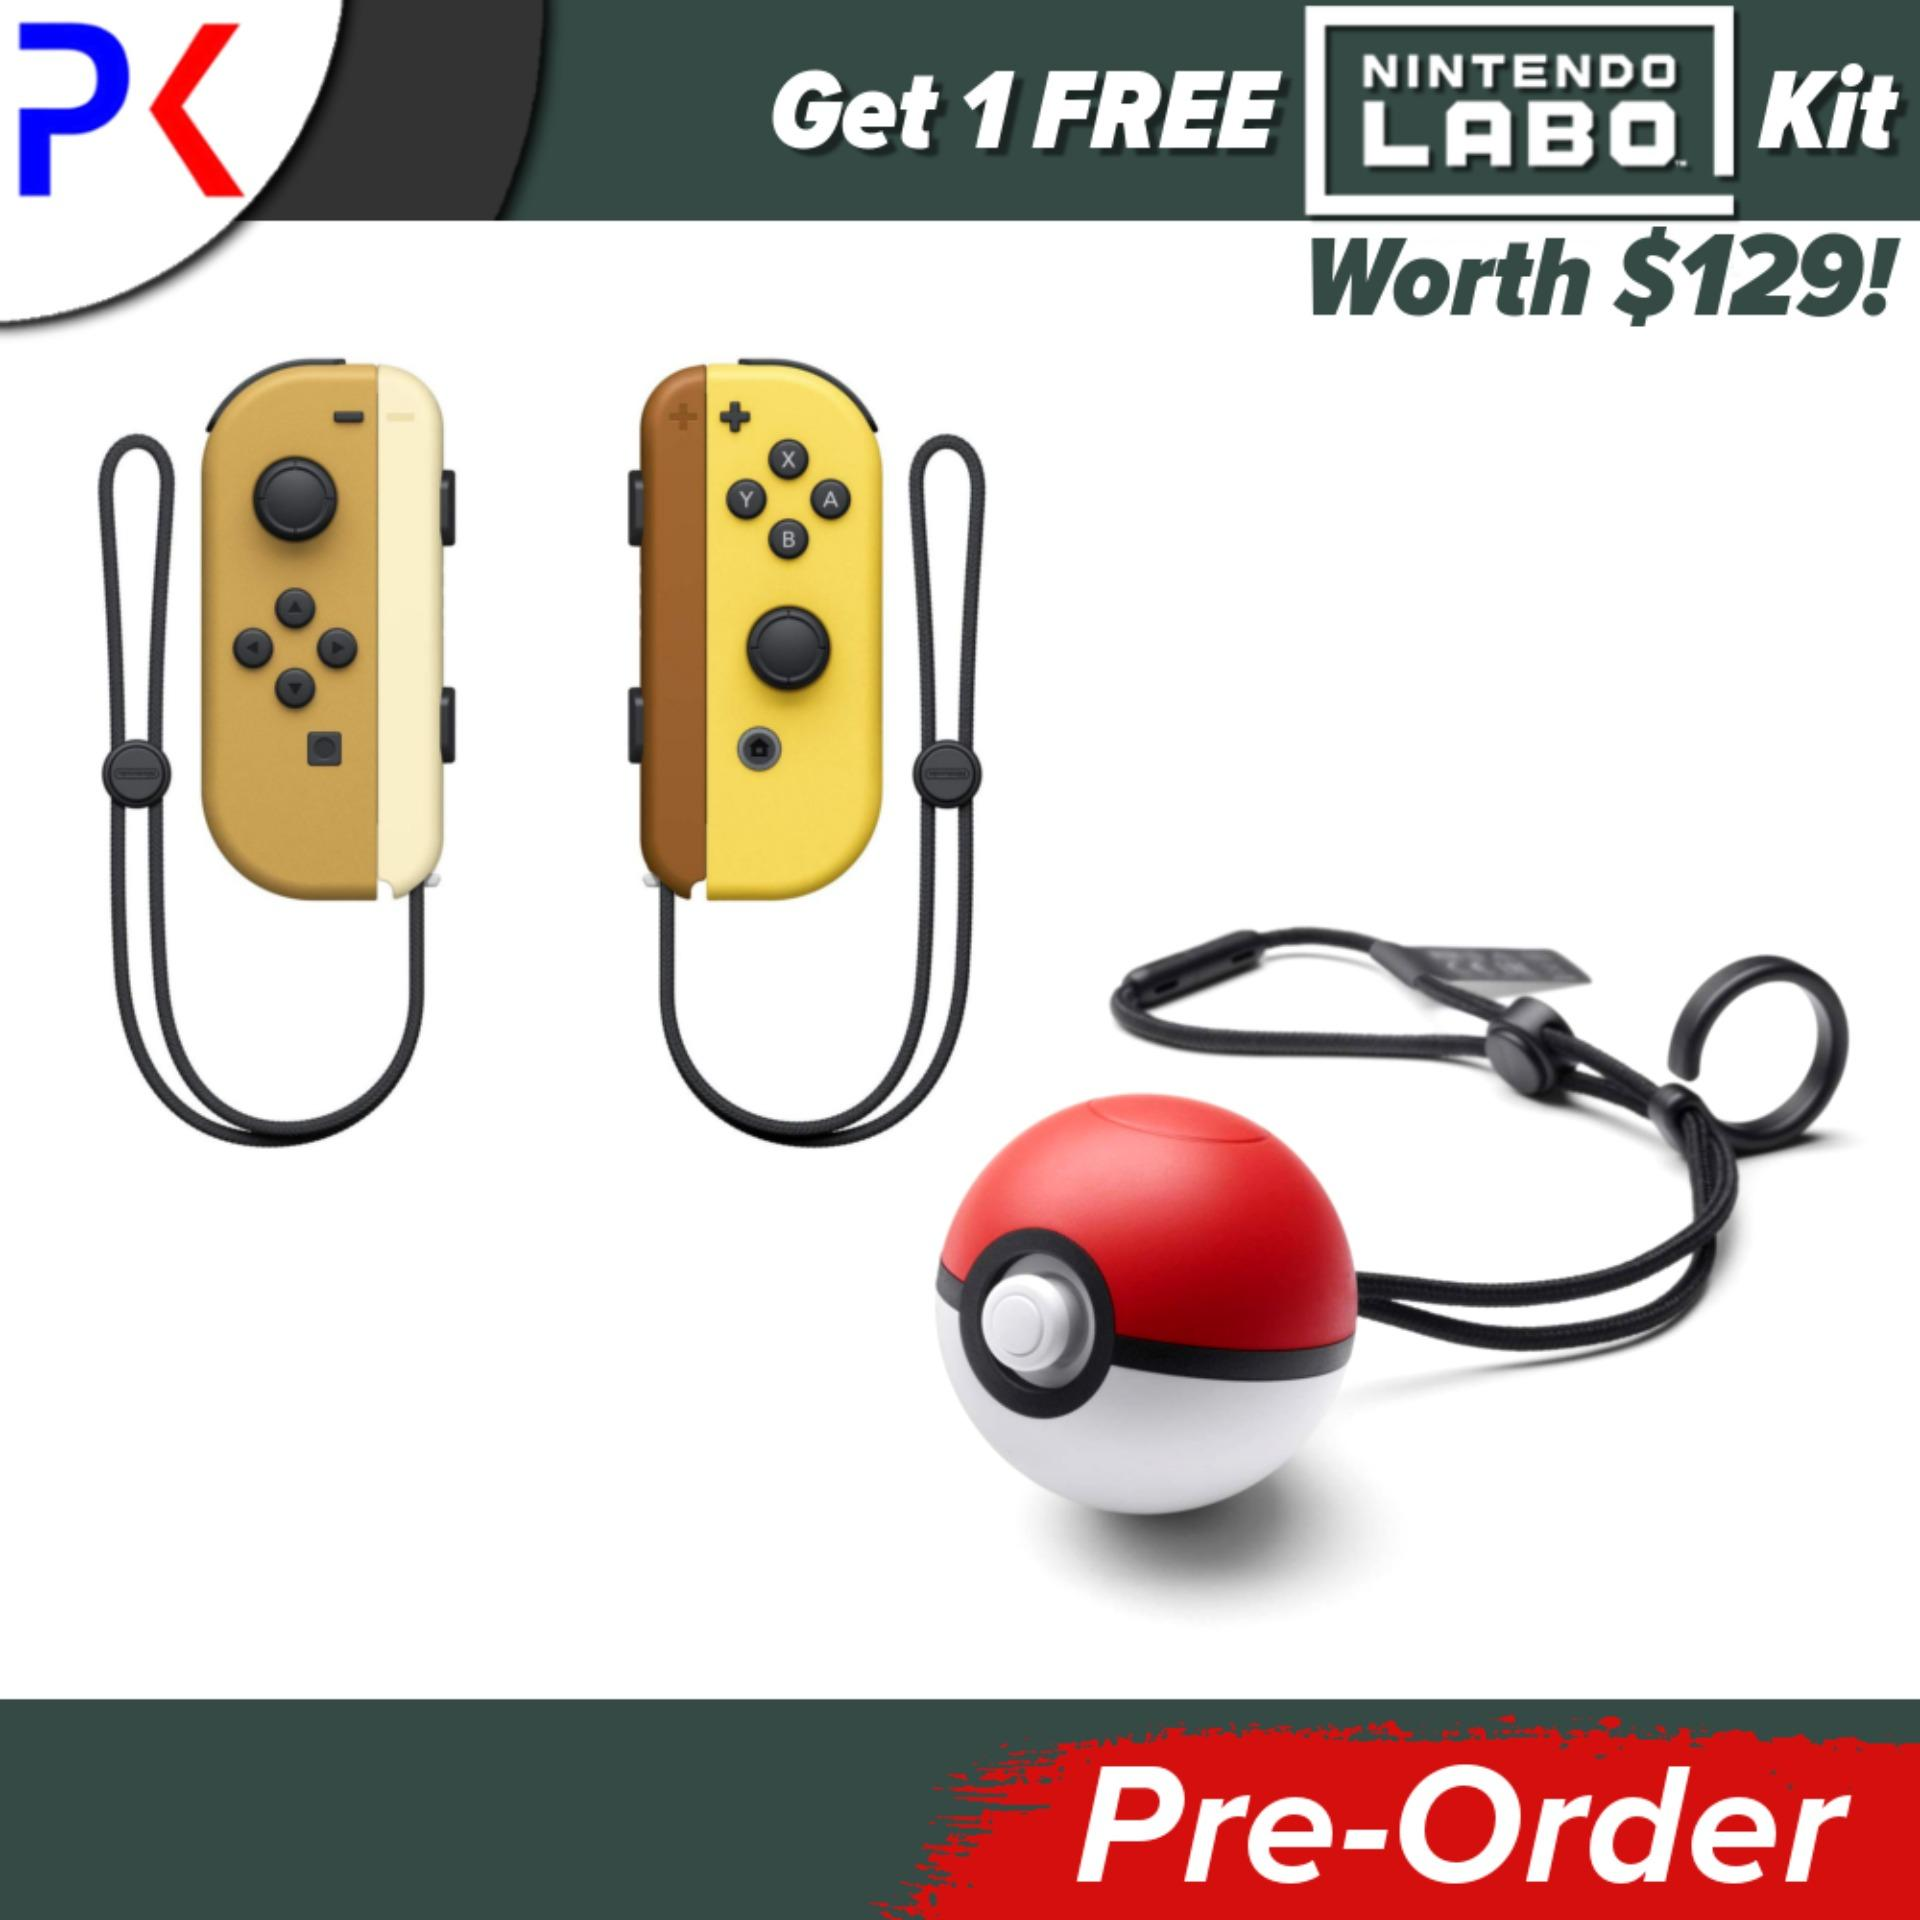 [Pre-Order] Nintendo Switch Console Pokemon Lets Go Edition [ASIA] + Free Labo Kit (Ships earliest 16 November)